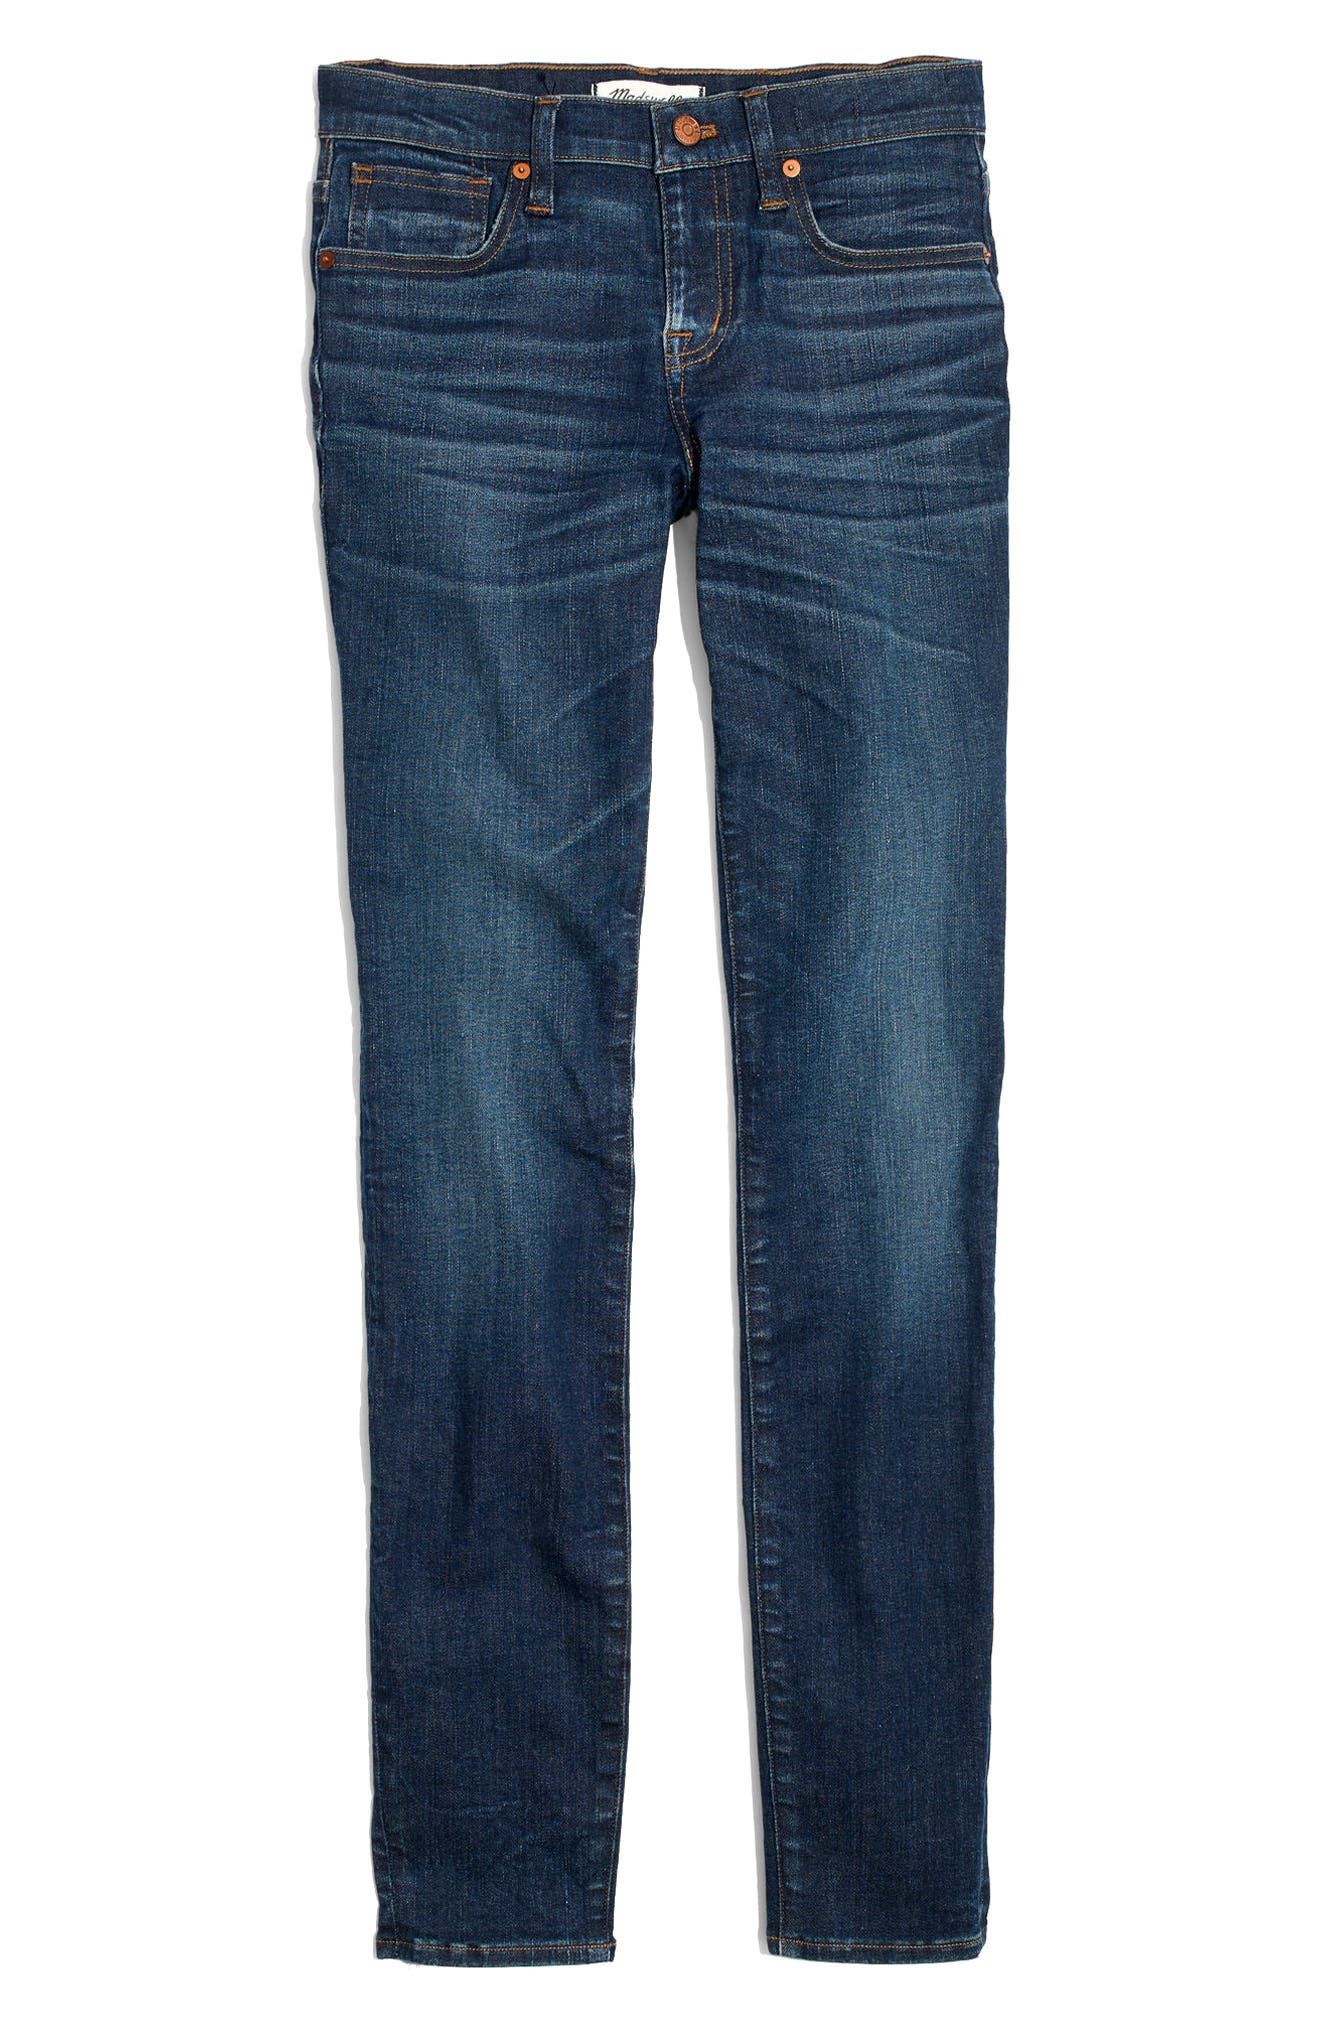 MADEWELL,                             8-Inch Skinny Jeans,                             Alternate thumbnail 4, color,                             400